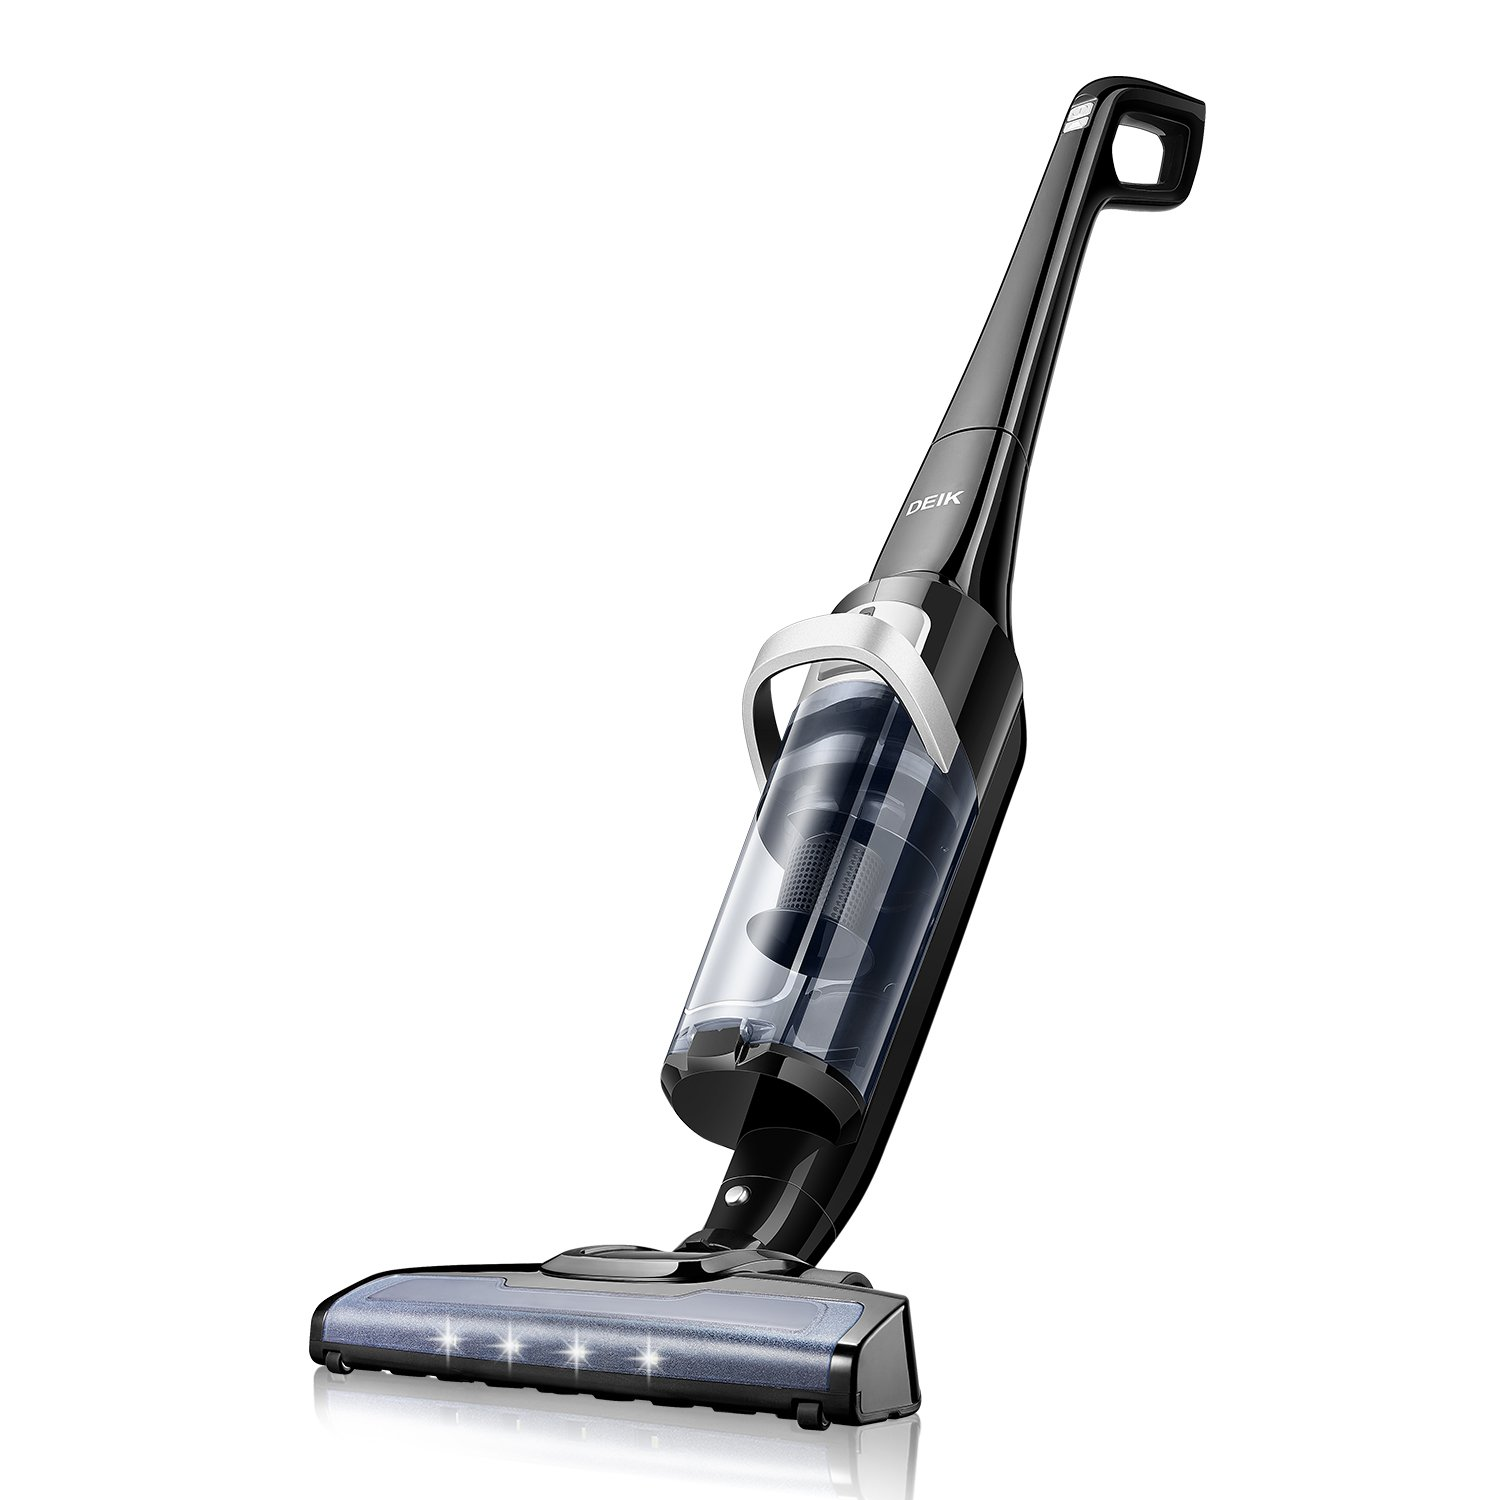 Deik Vacuum Cleaner, Cordless Vacuum Cleaner with 28.8V Li-ion Battery Powered, Lightweight Rechargeable Bagless Stick Vacuum, Cyclonic HEPA Filtration System with Wall Mount, 2018 Upgrated by Deik